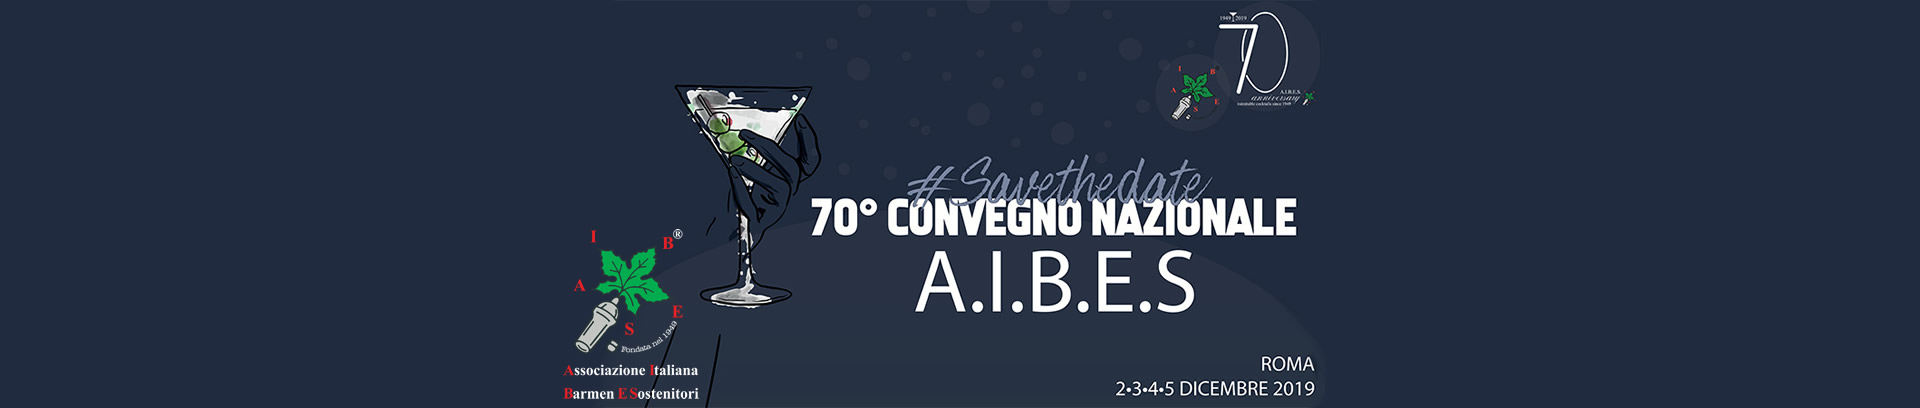 Copertina-AIBES-Save-The-Date